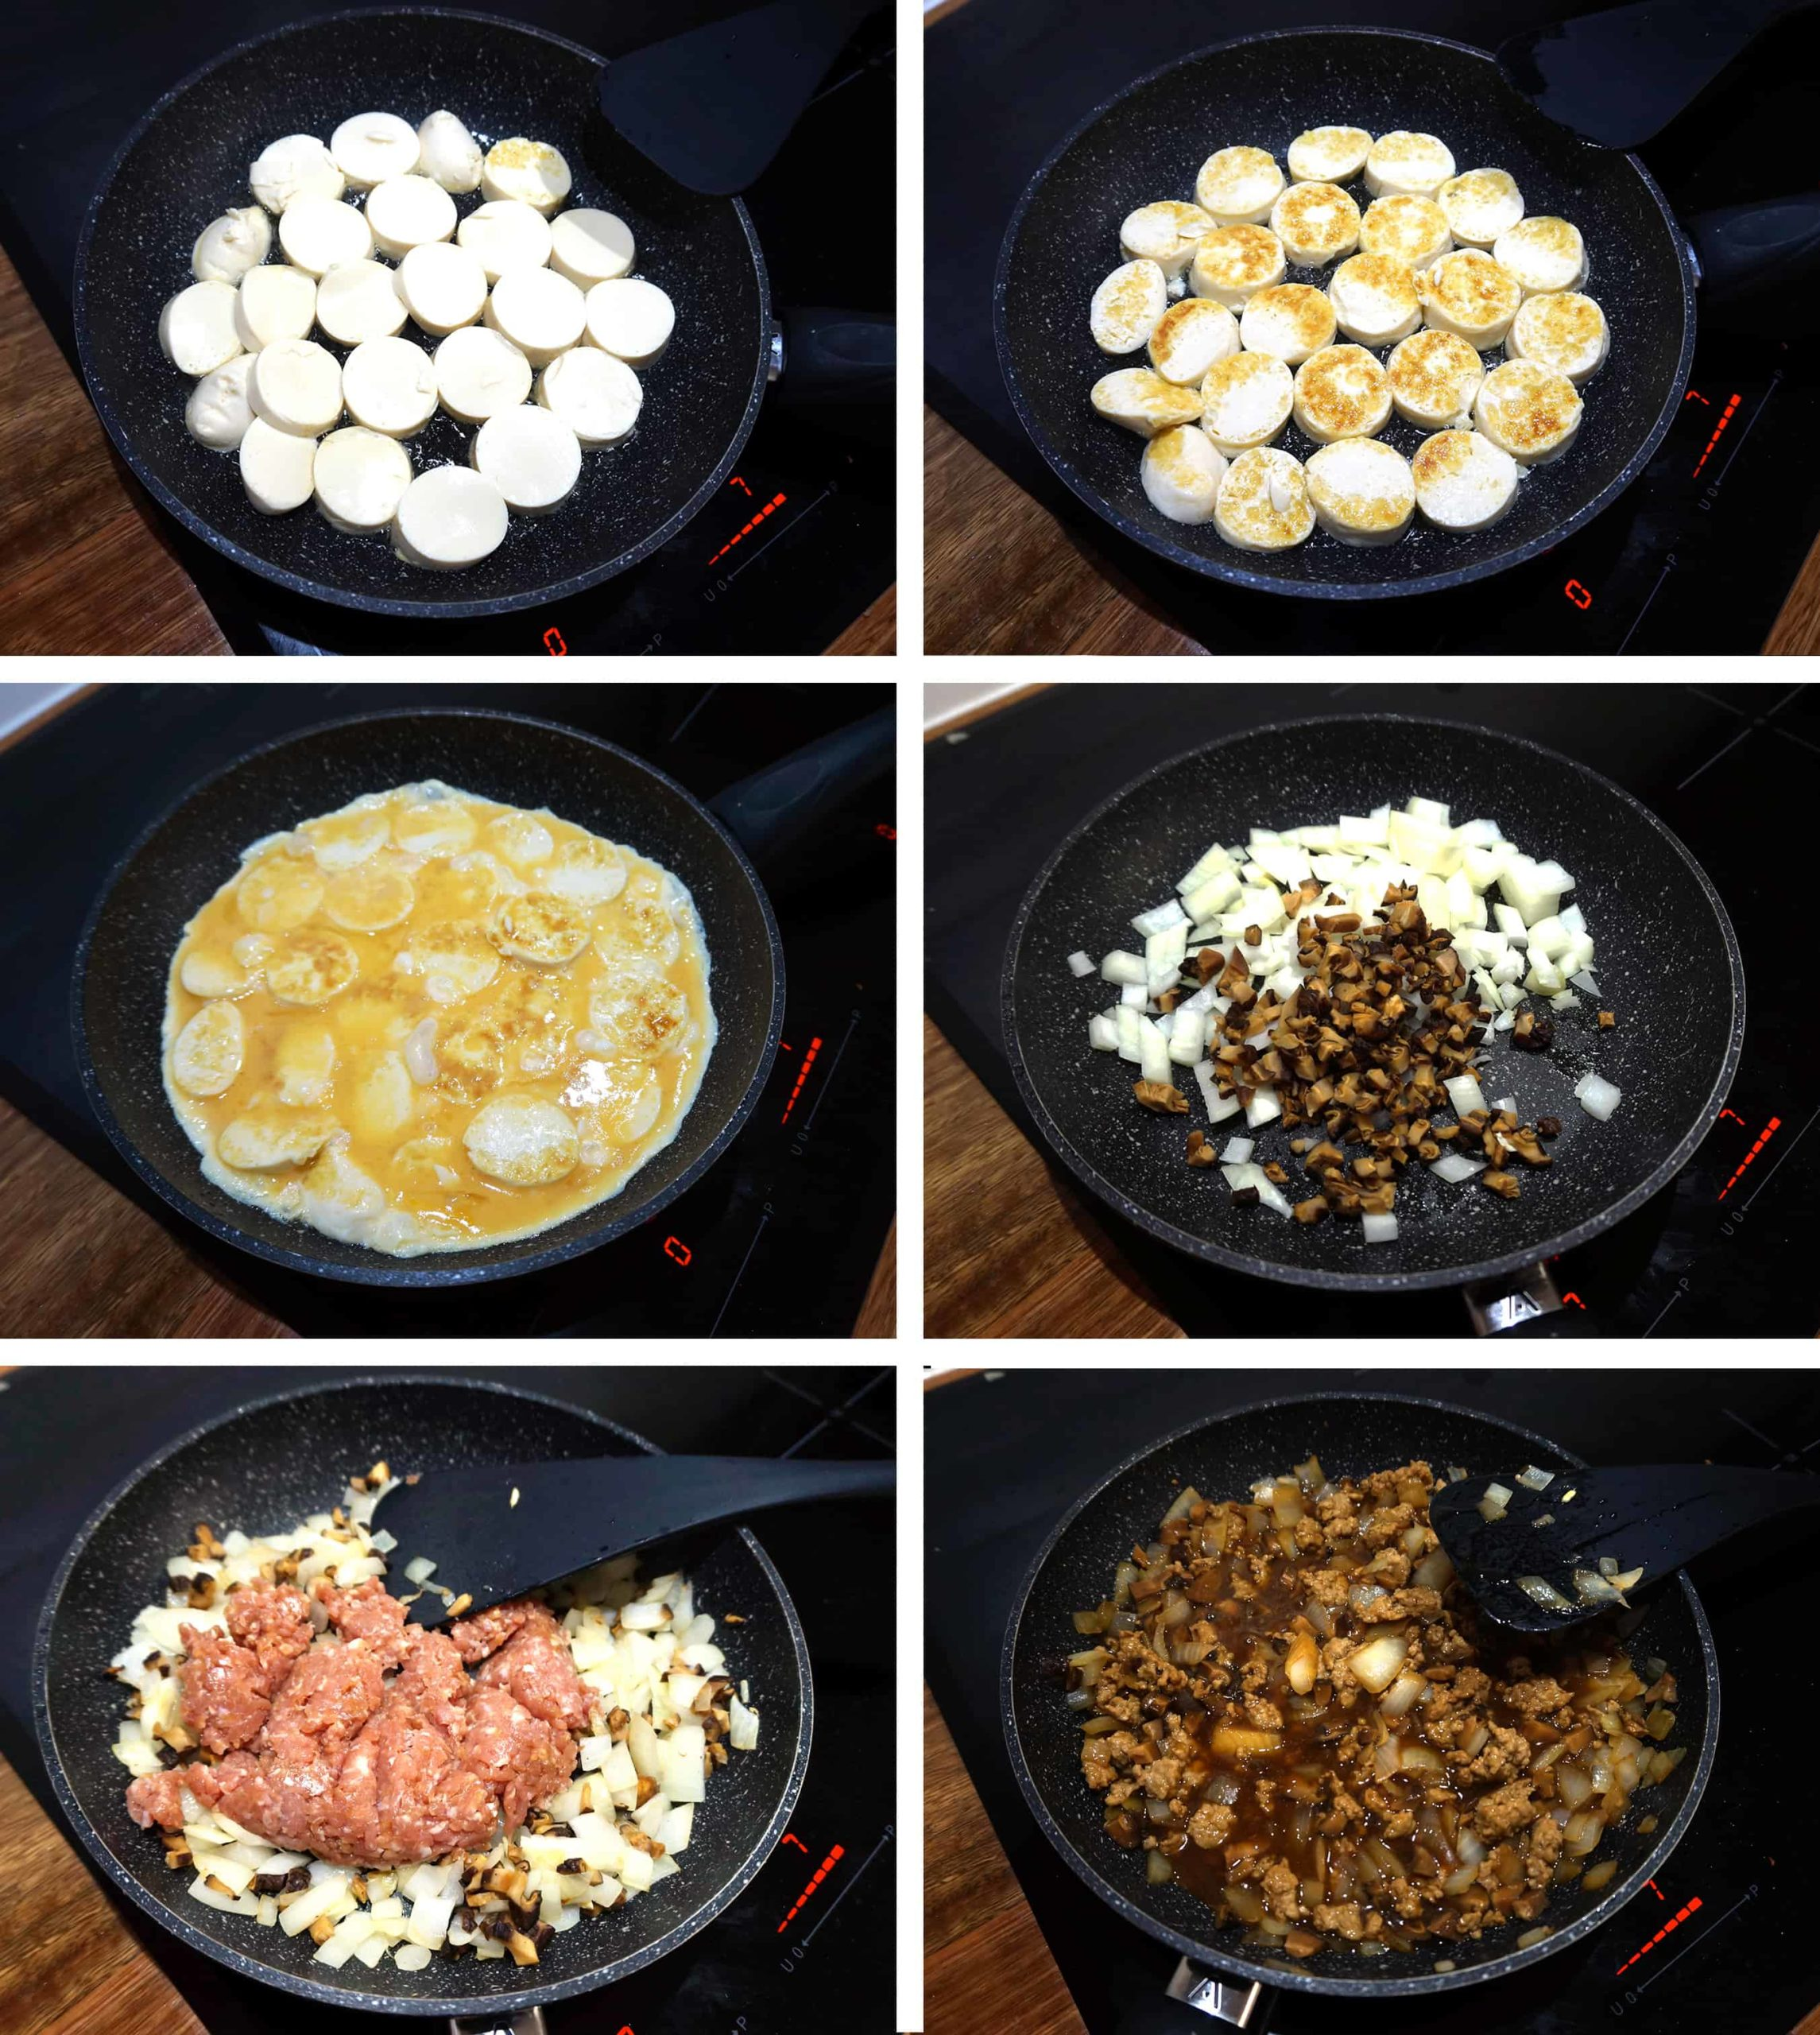 process steps showing how to cook the first and second parts of the recipe